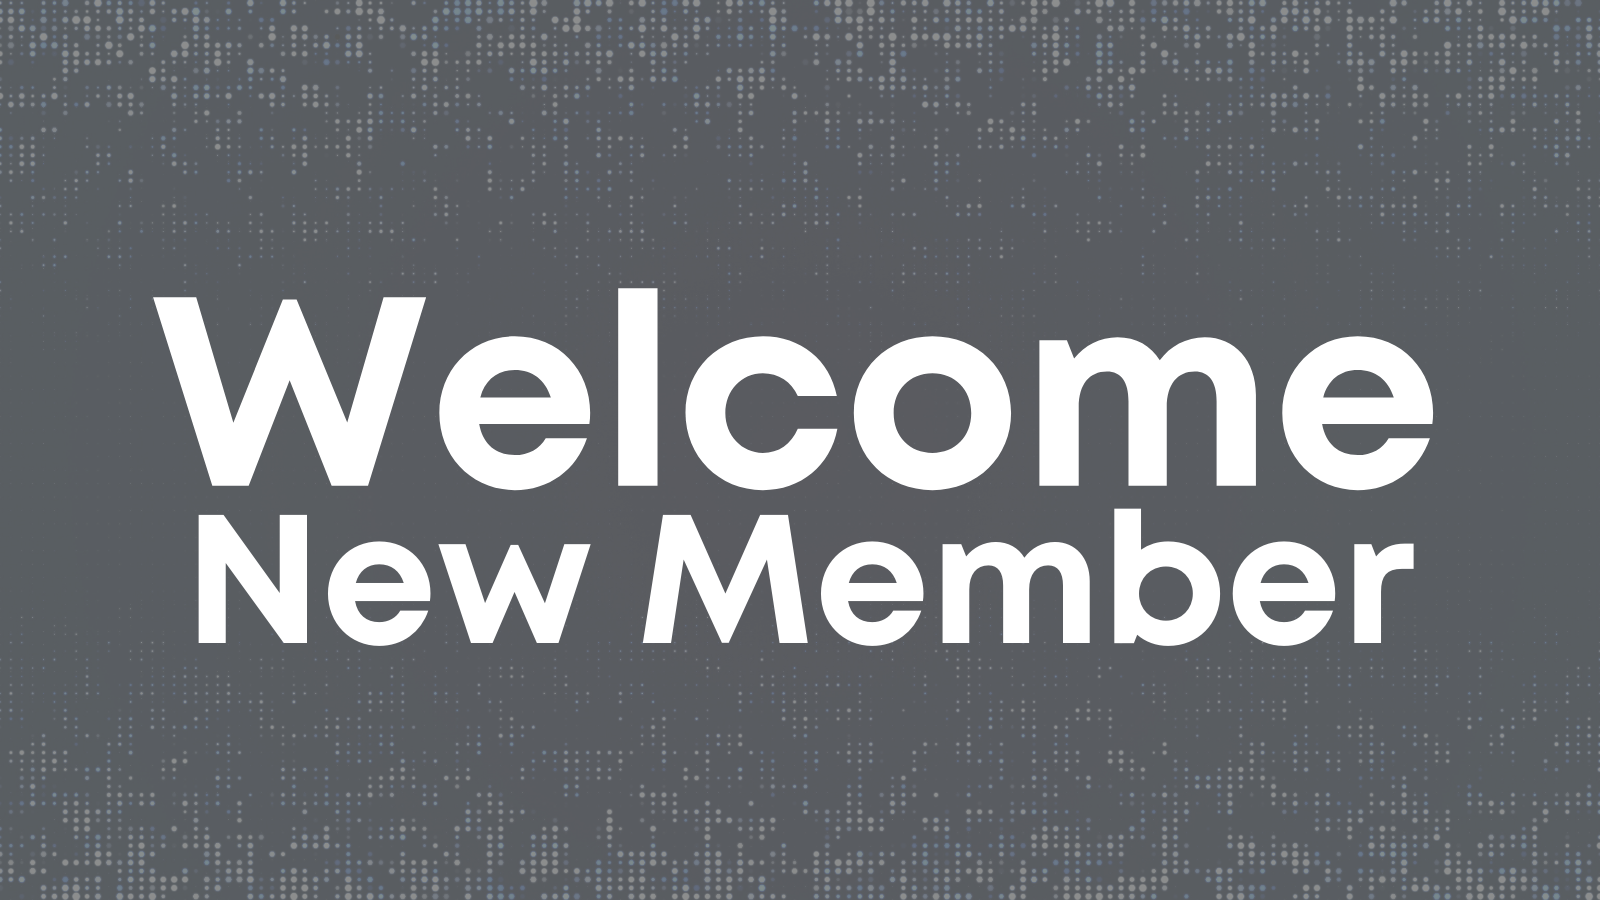 Welcome New Member News Graphic